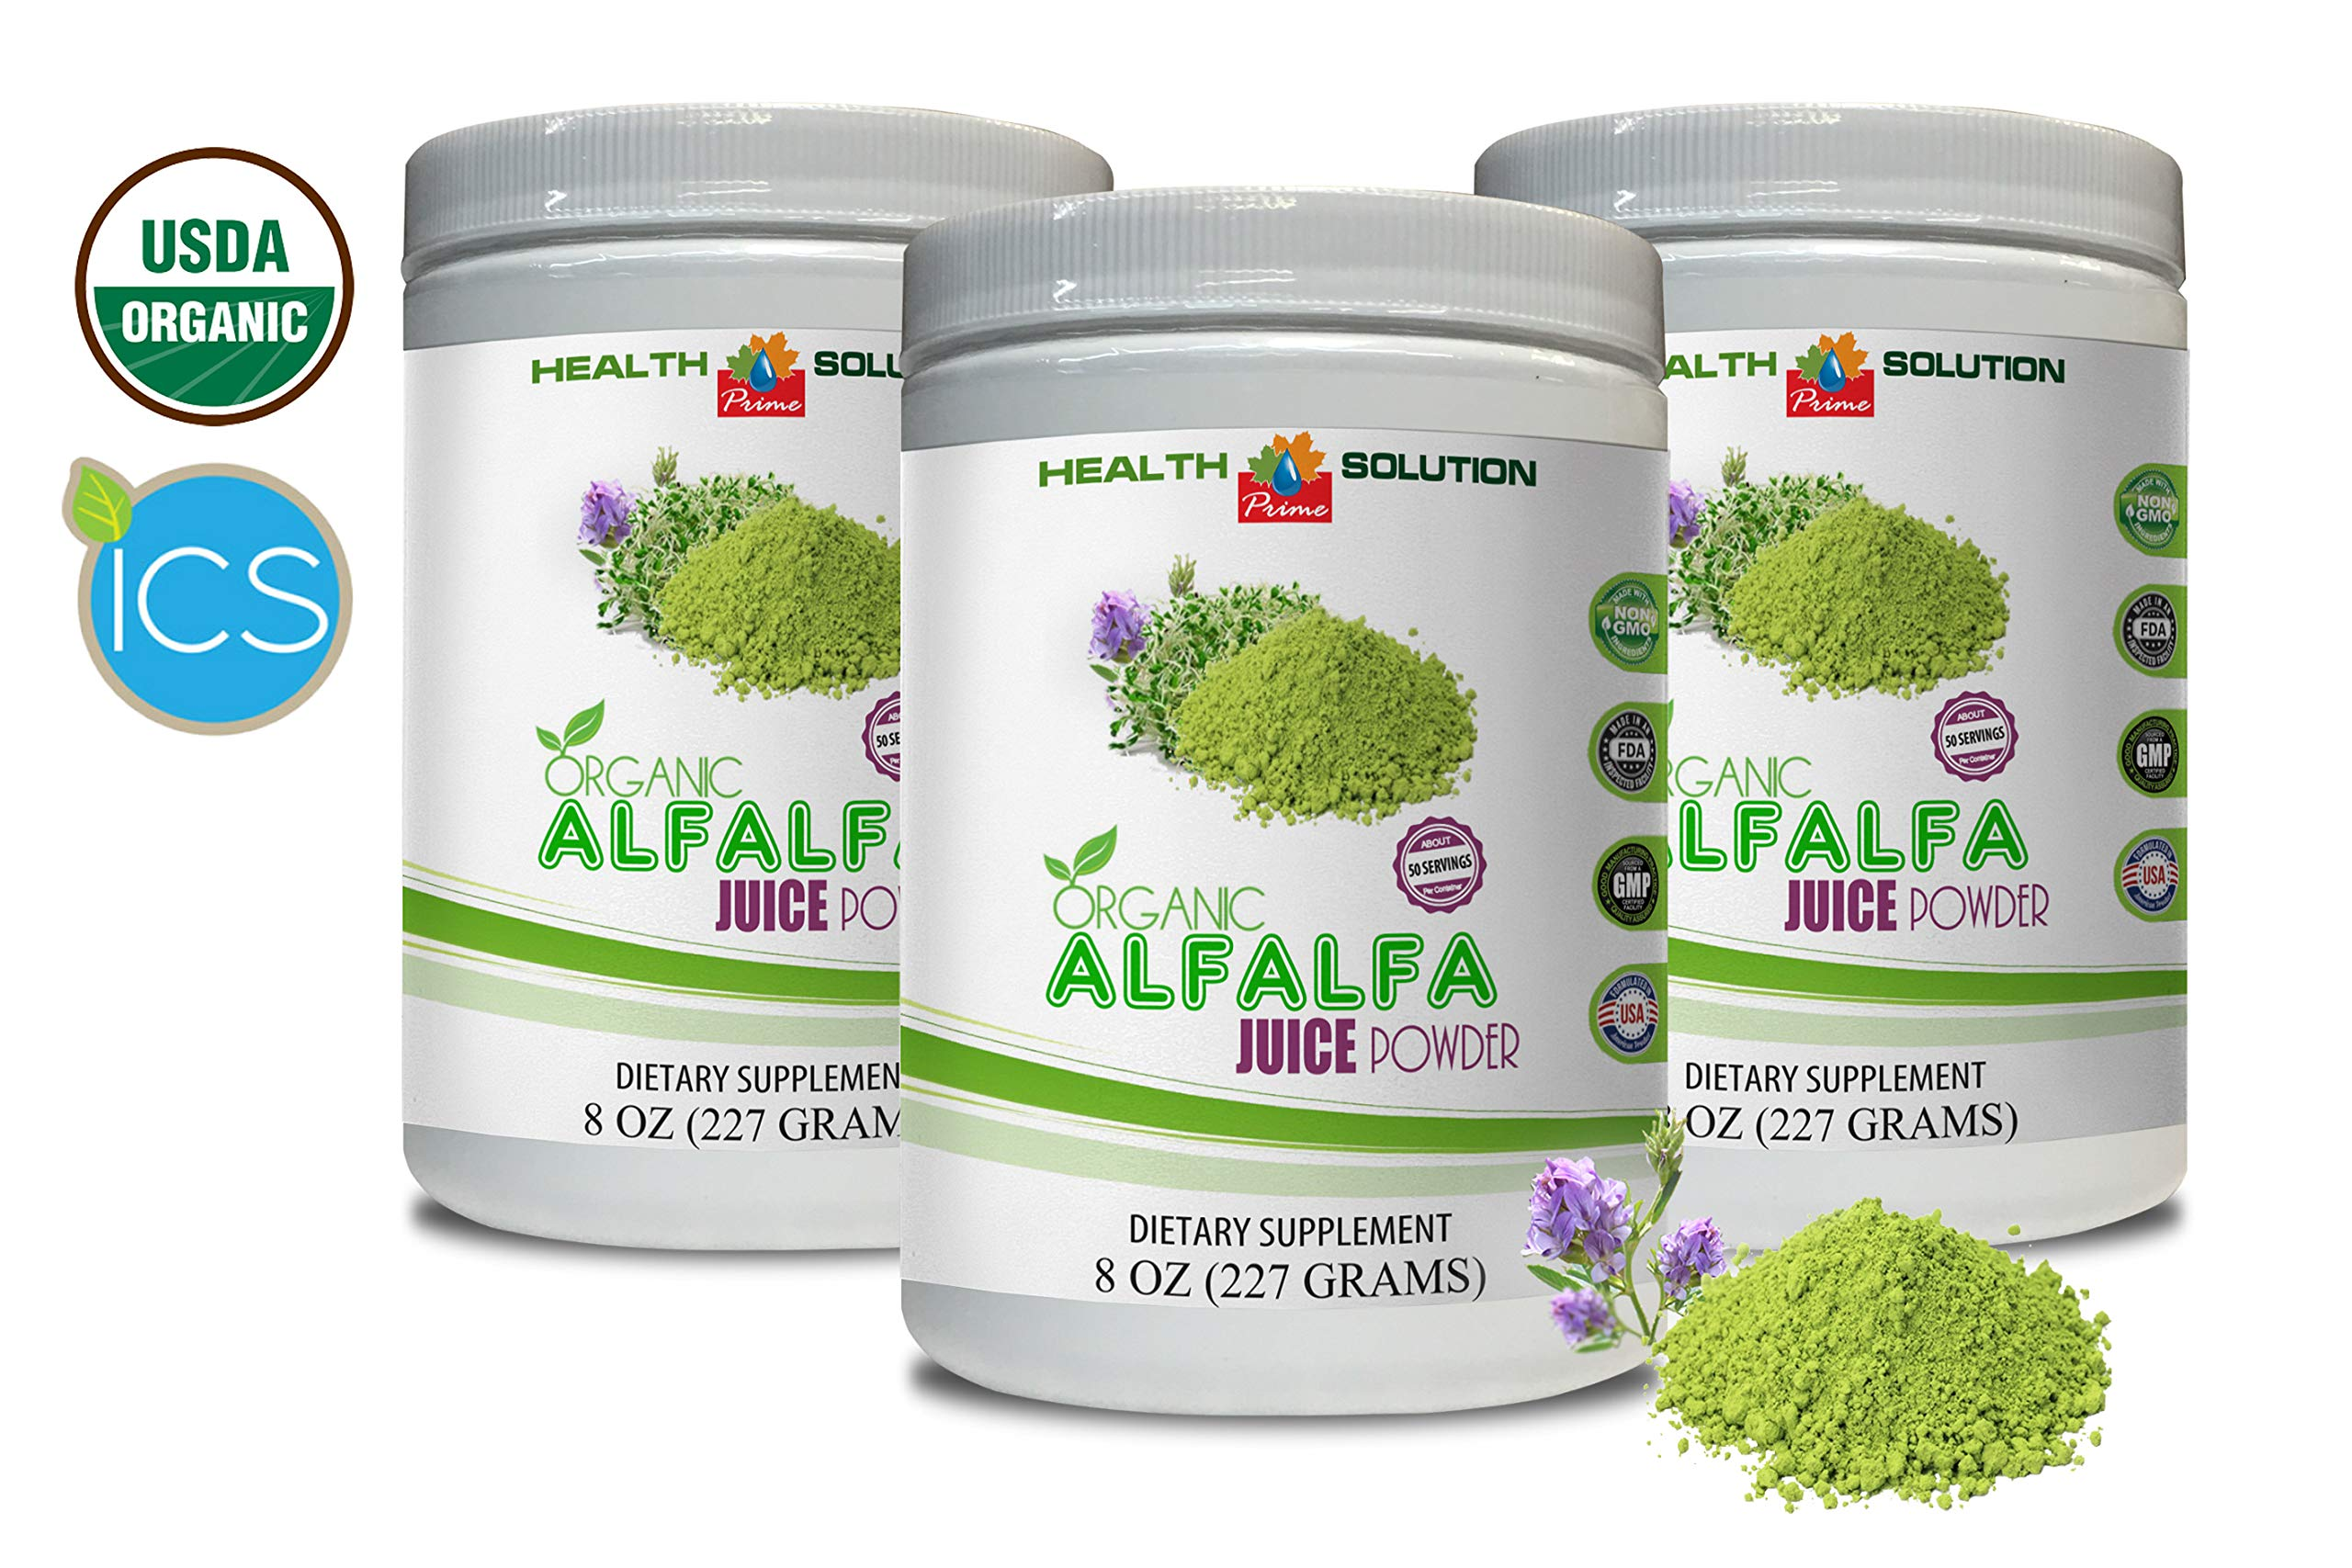 antioxidant Vitamin Supplement - Organic Alfalfa Juice Powder - Alfalfa superfood - 3 Cans 24 OZ (150 Servings)